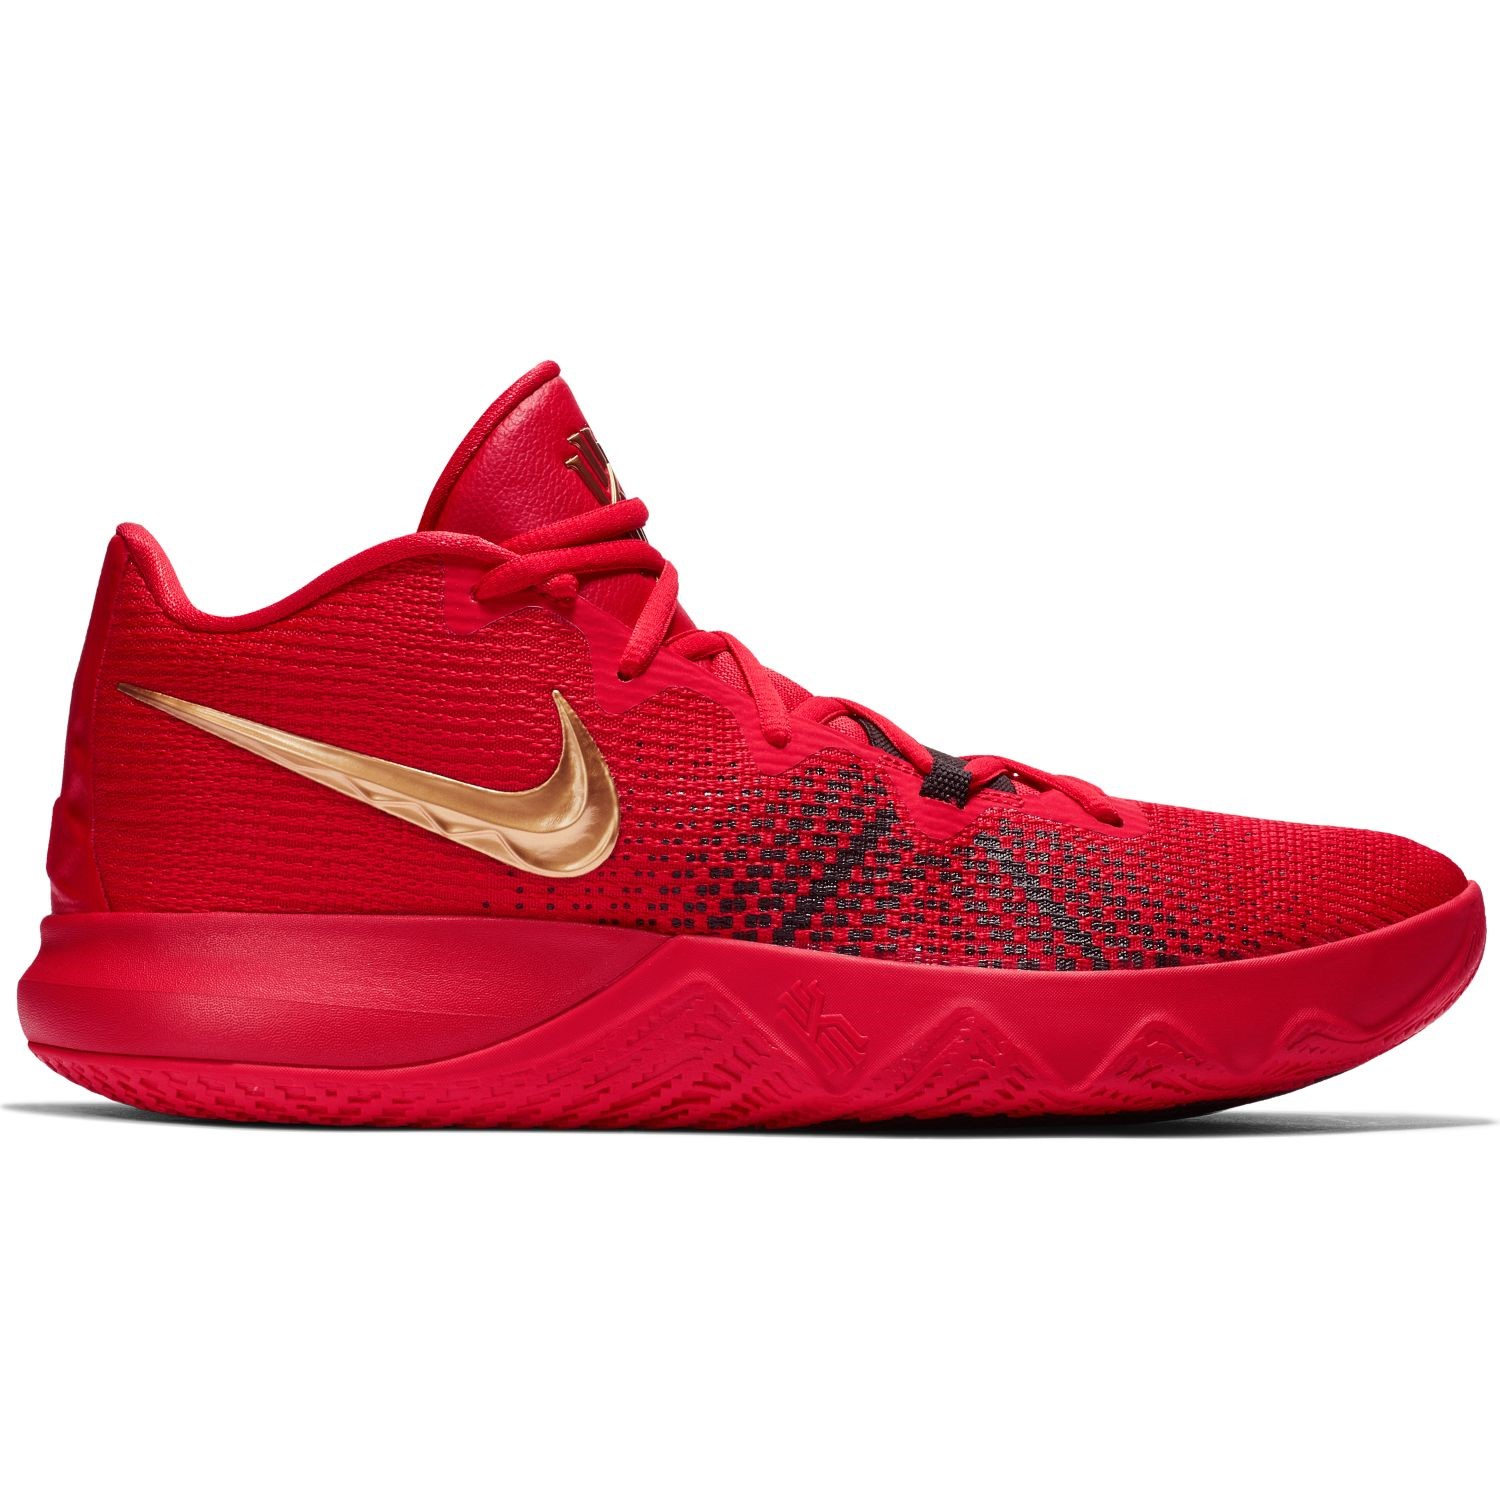 bab16eb91d89 Nike Kyrie Flytrap - Mens Basketball Shoes - University Red Metallic Gold